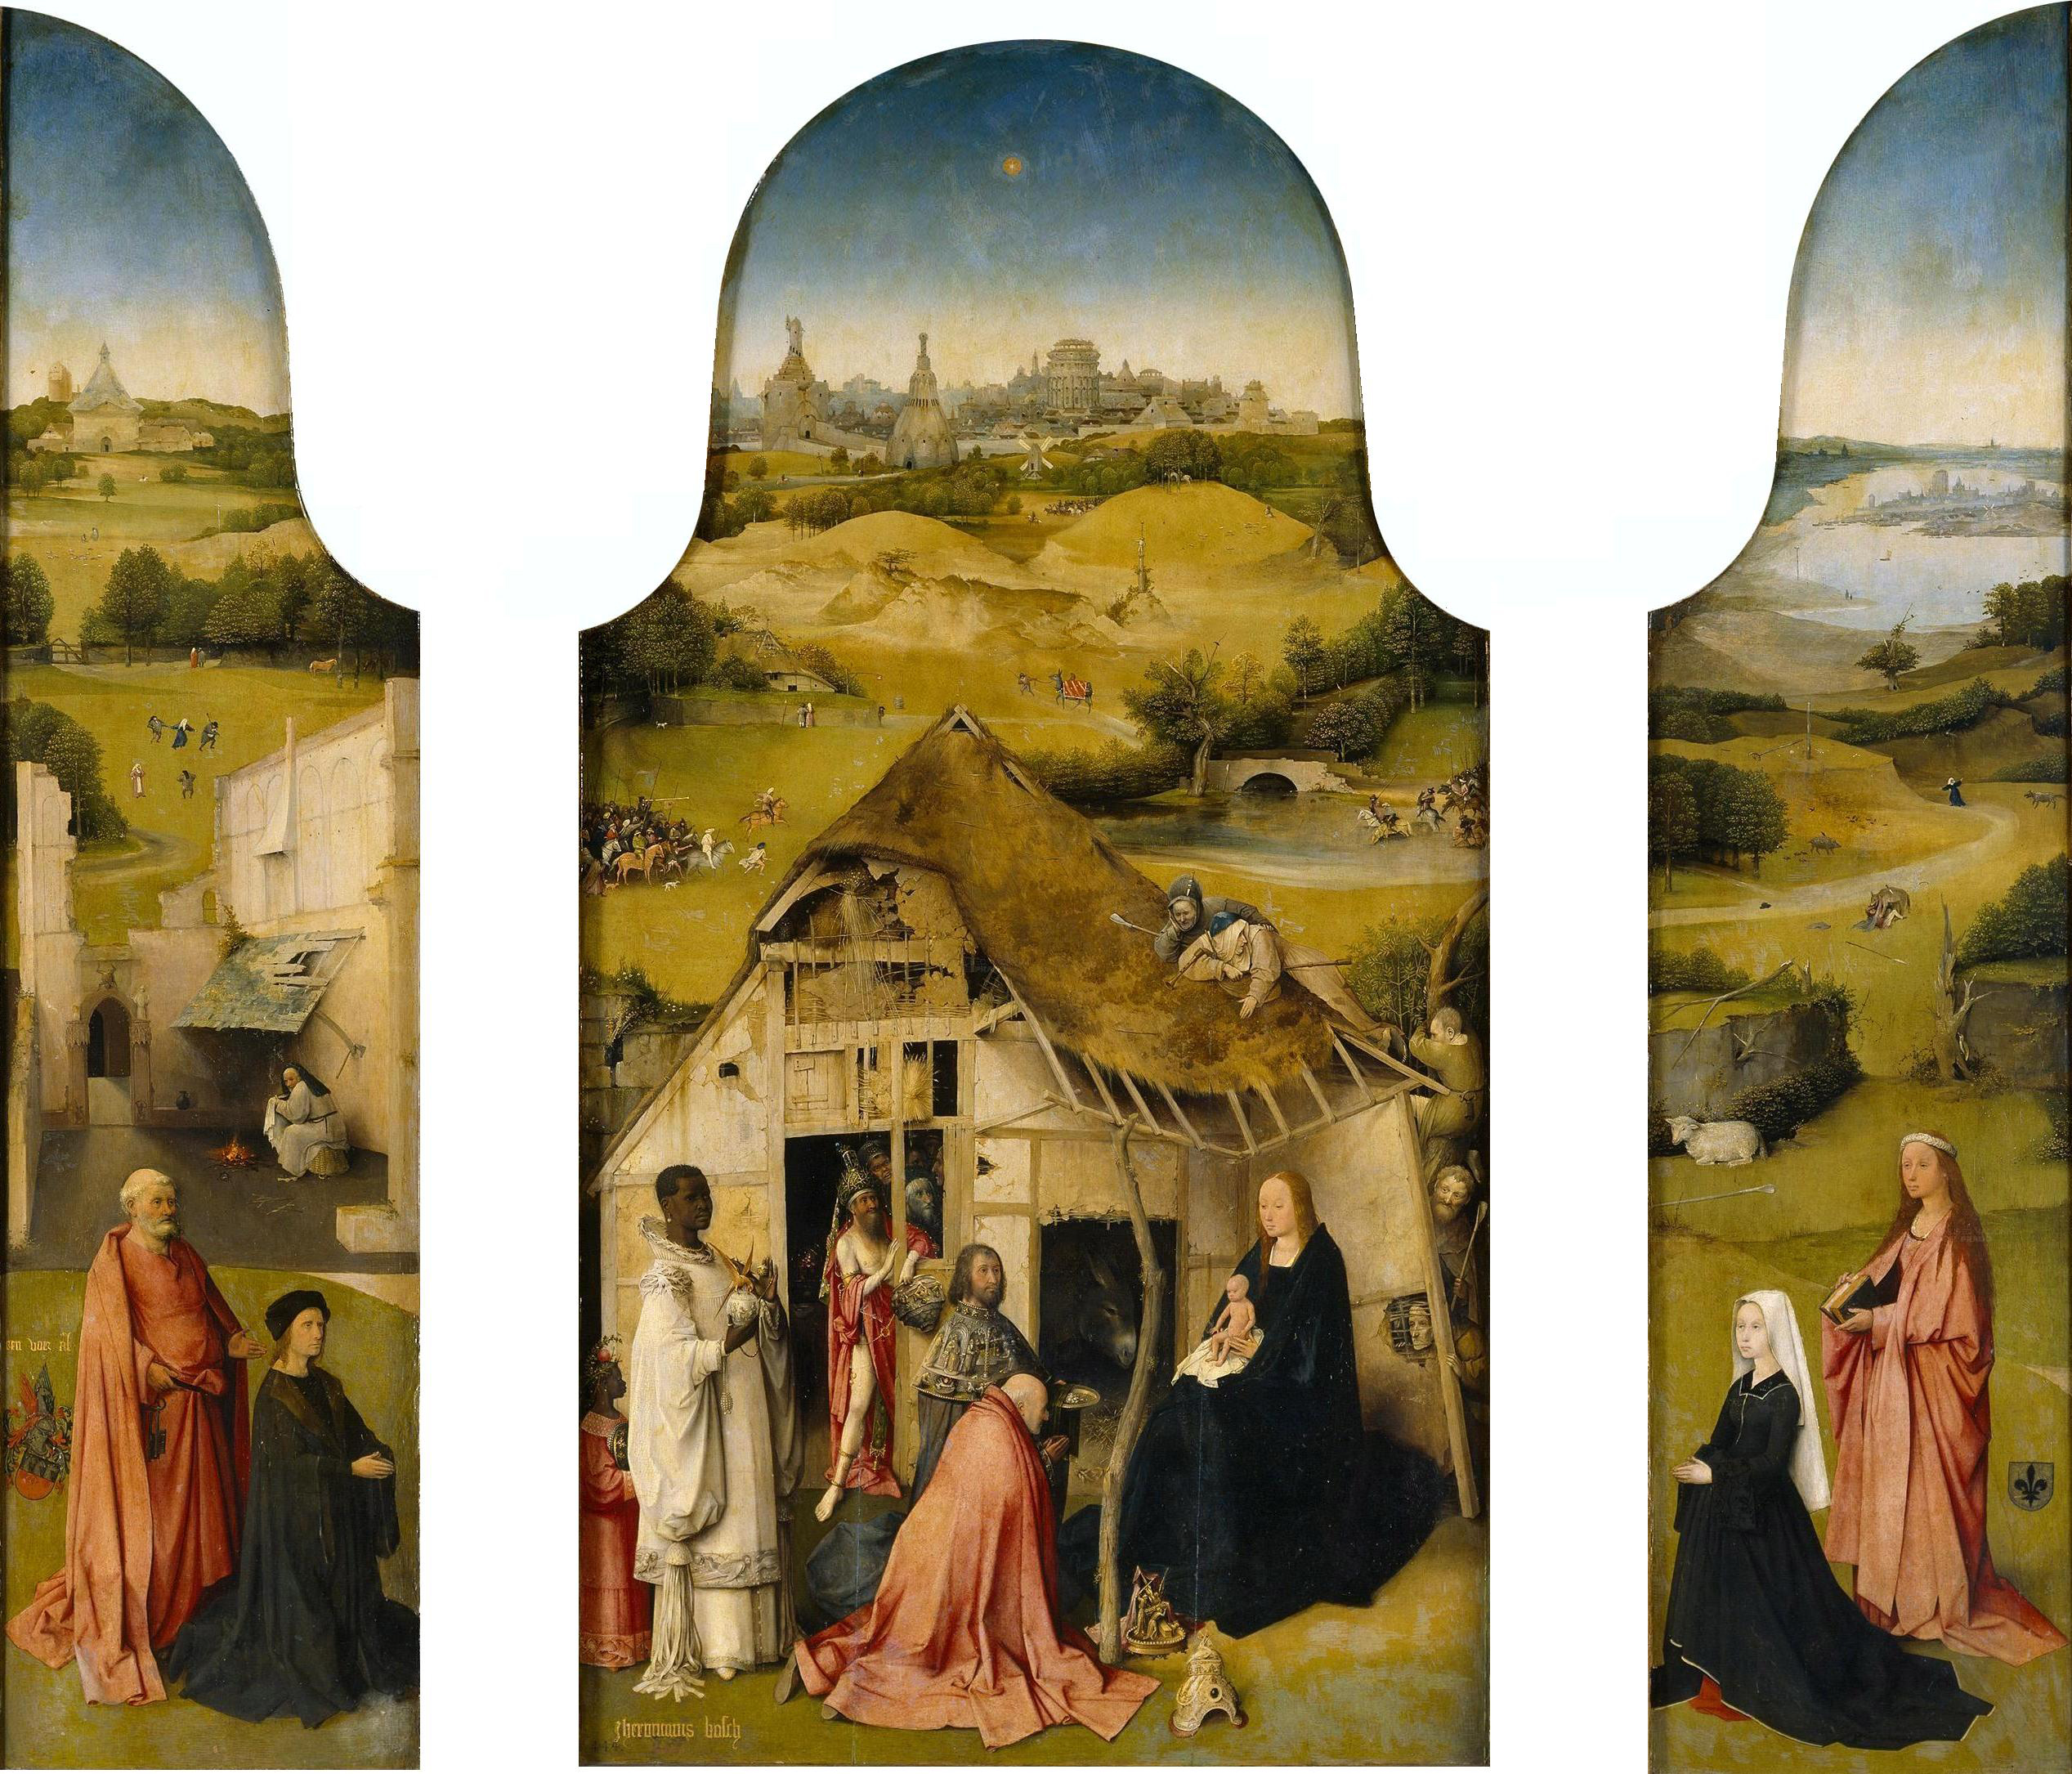 https://i1.wp.com/upload.wikimedia.org/wikipedia/commons/7/7a/J._Bosch_Adoration_of_the_Magi_Triptych.jpg